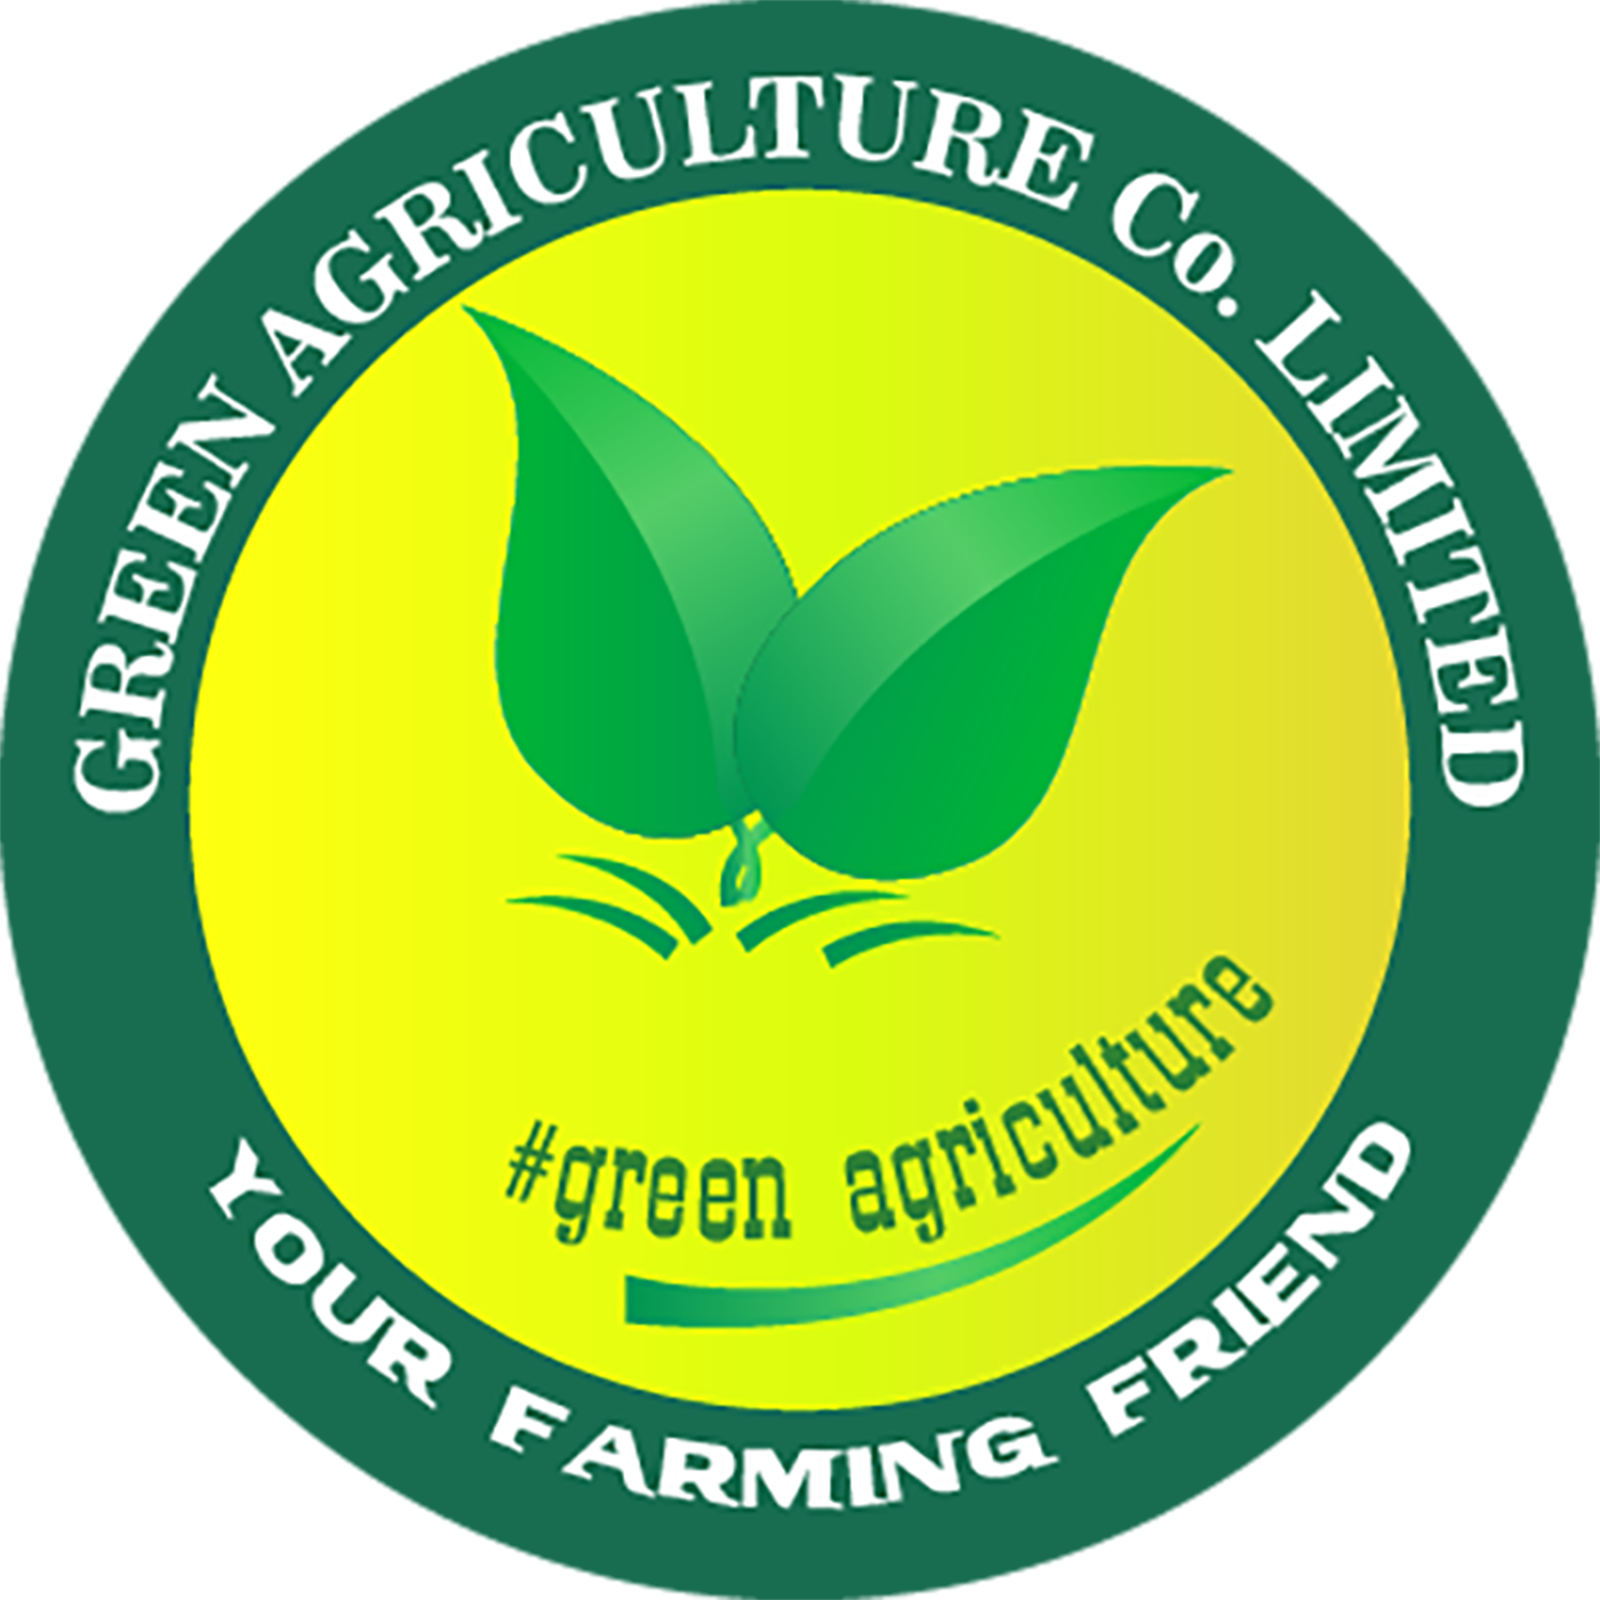 GREEN AGRICULTURE Co. LIMITED